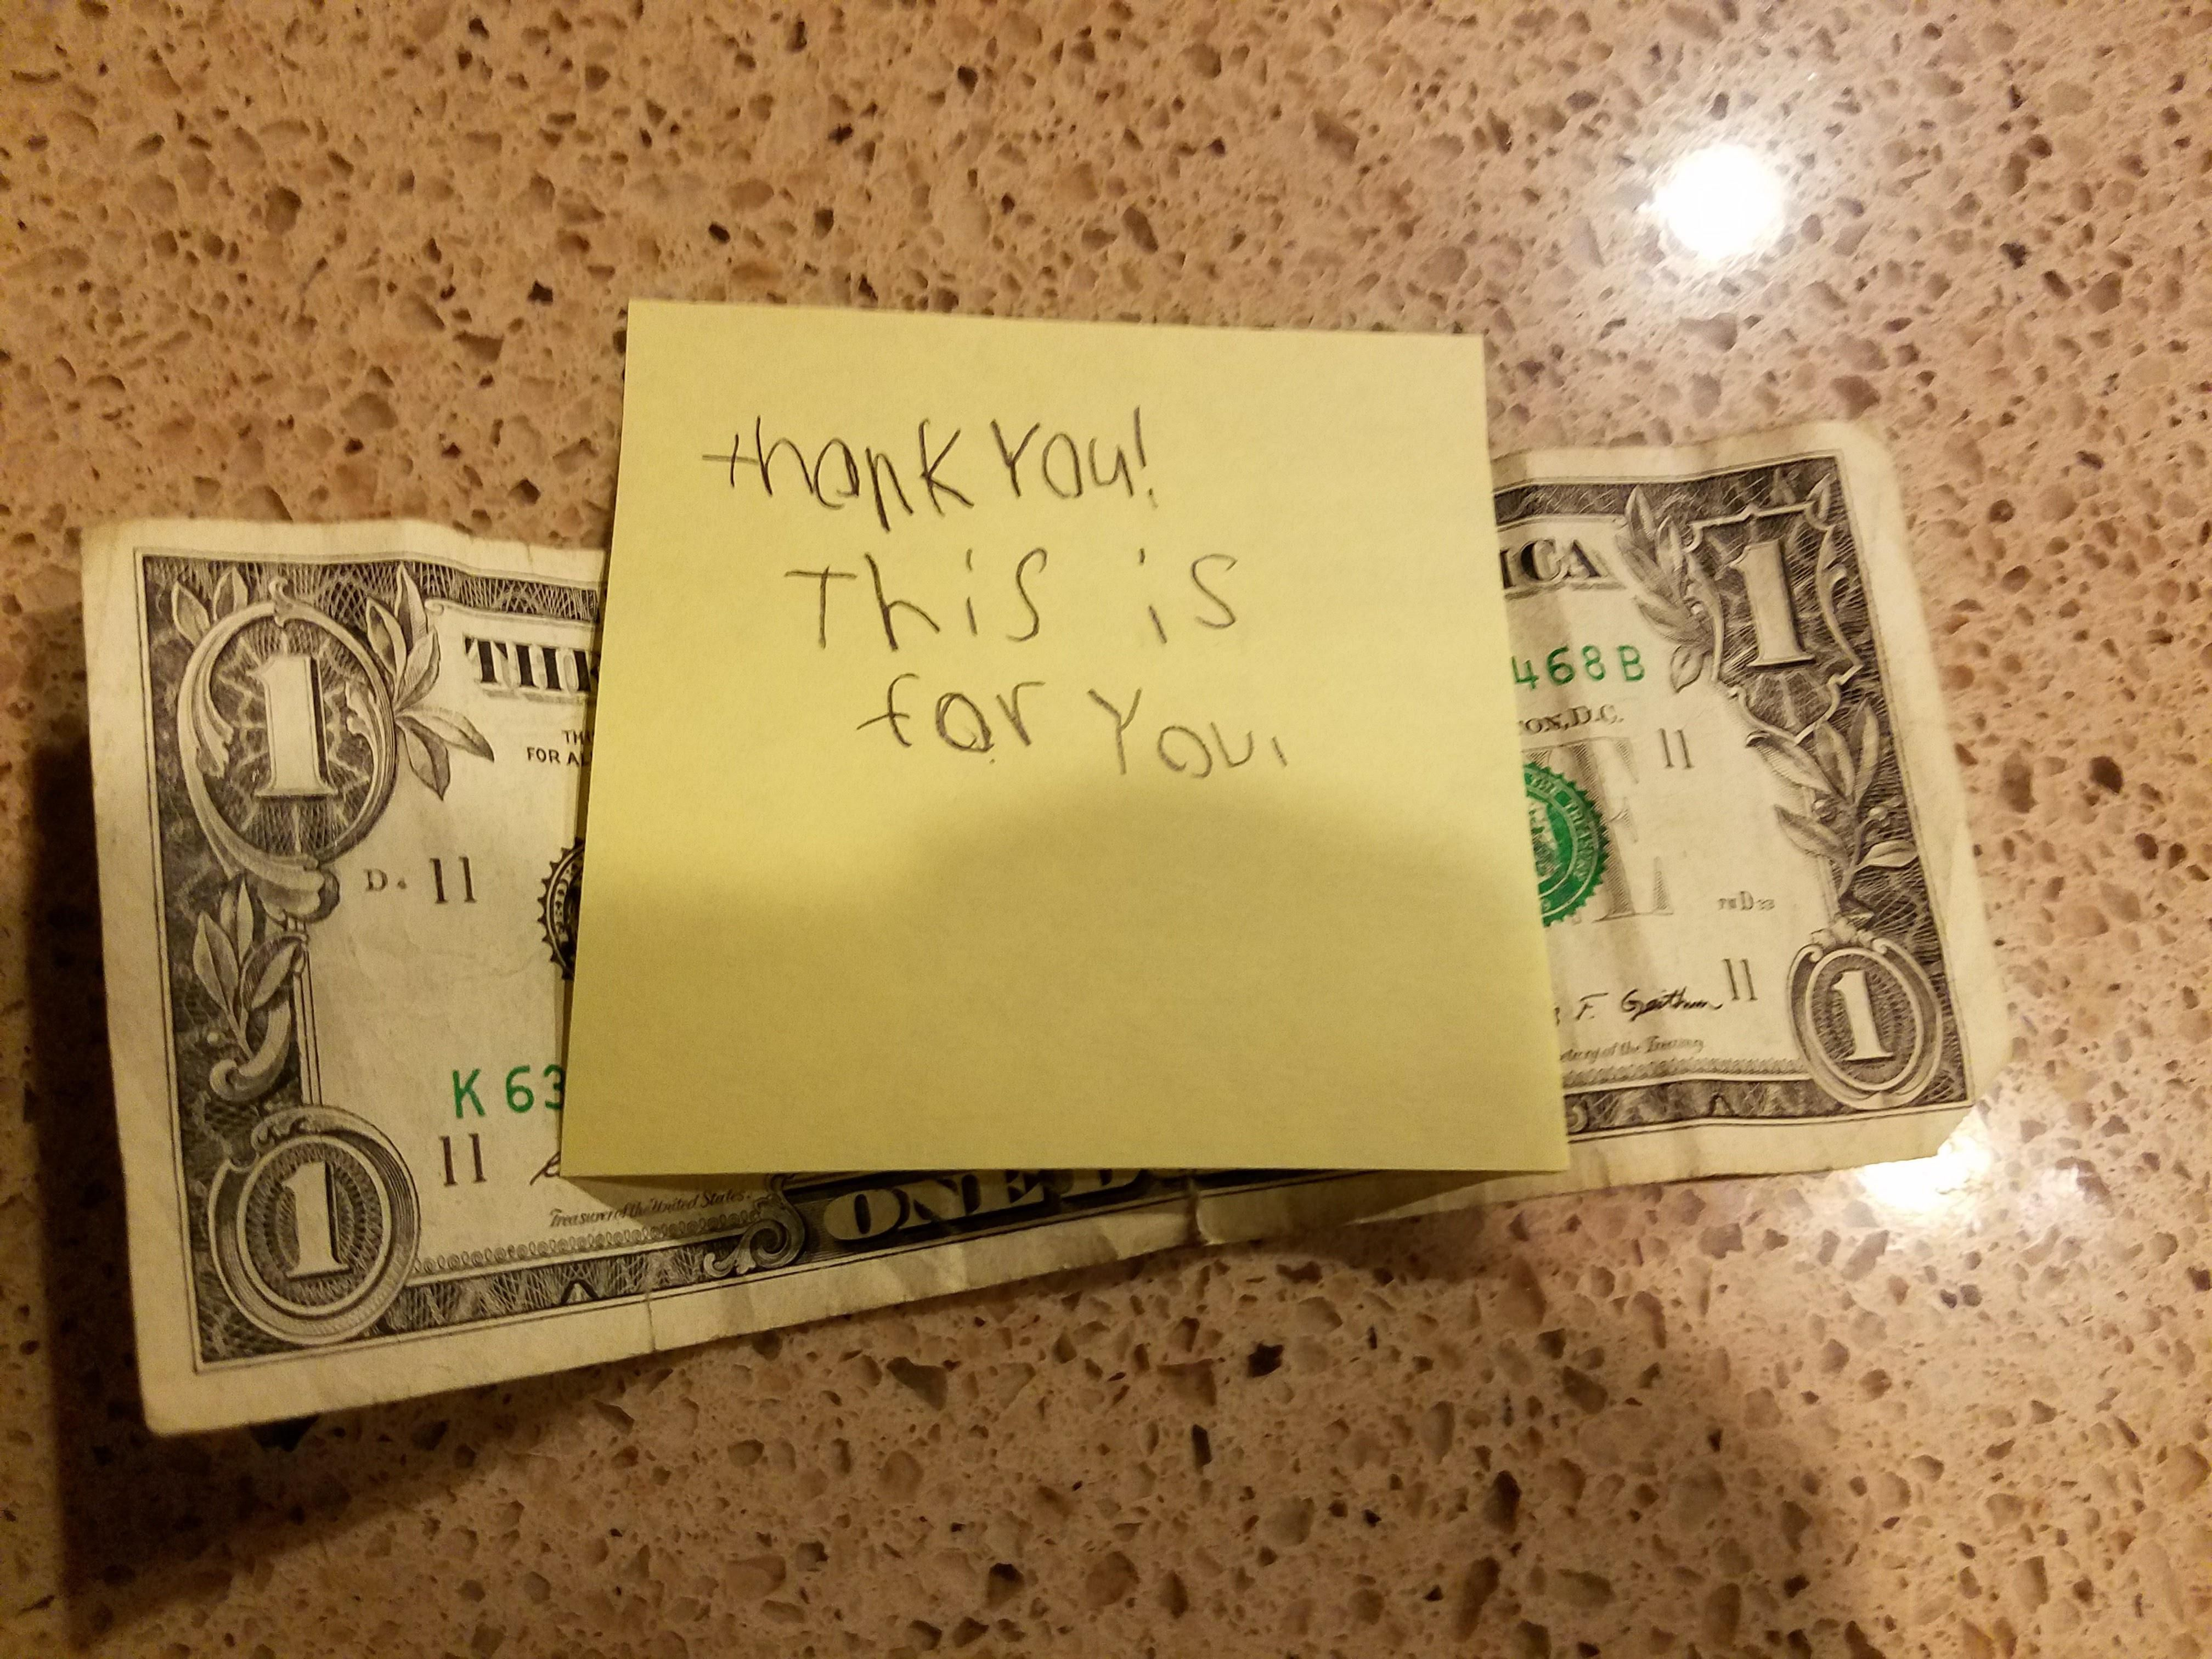 My son tipped the tooth fairy...